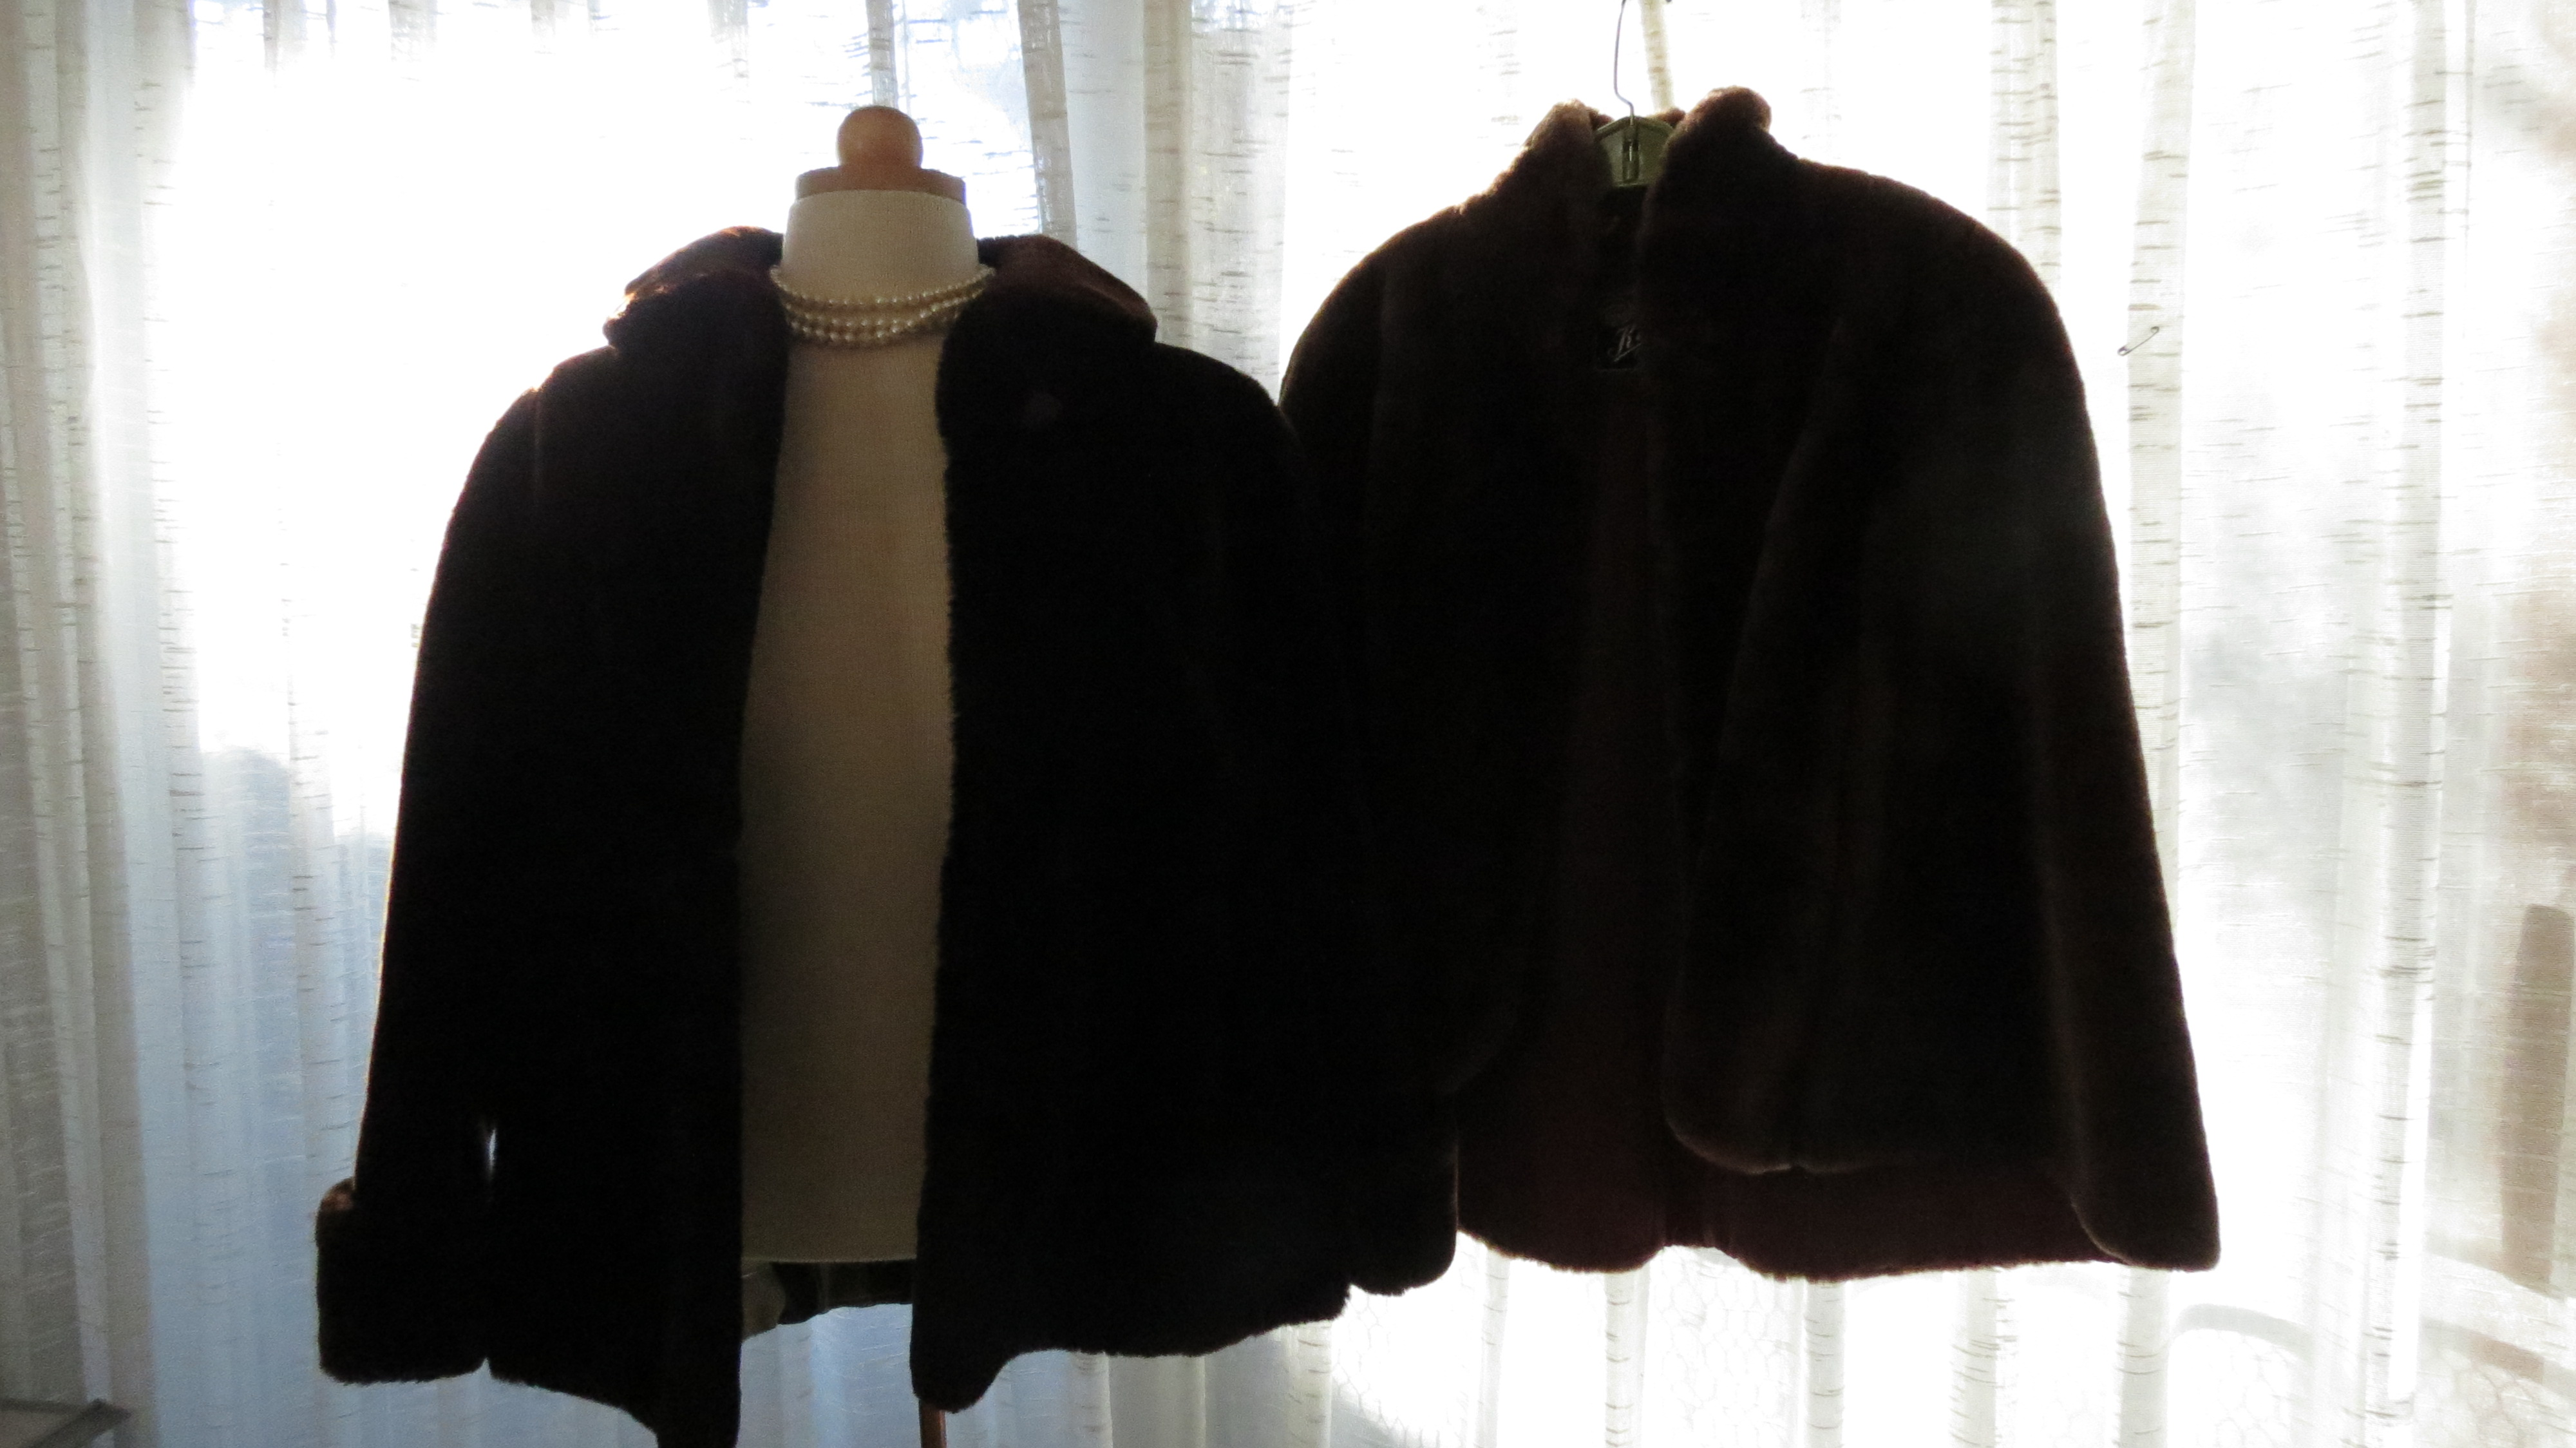 2 SABLE - COLOR FAUX FURS FROM THE 1950'S